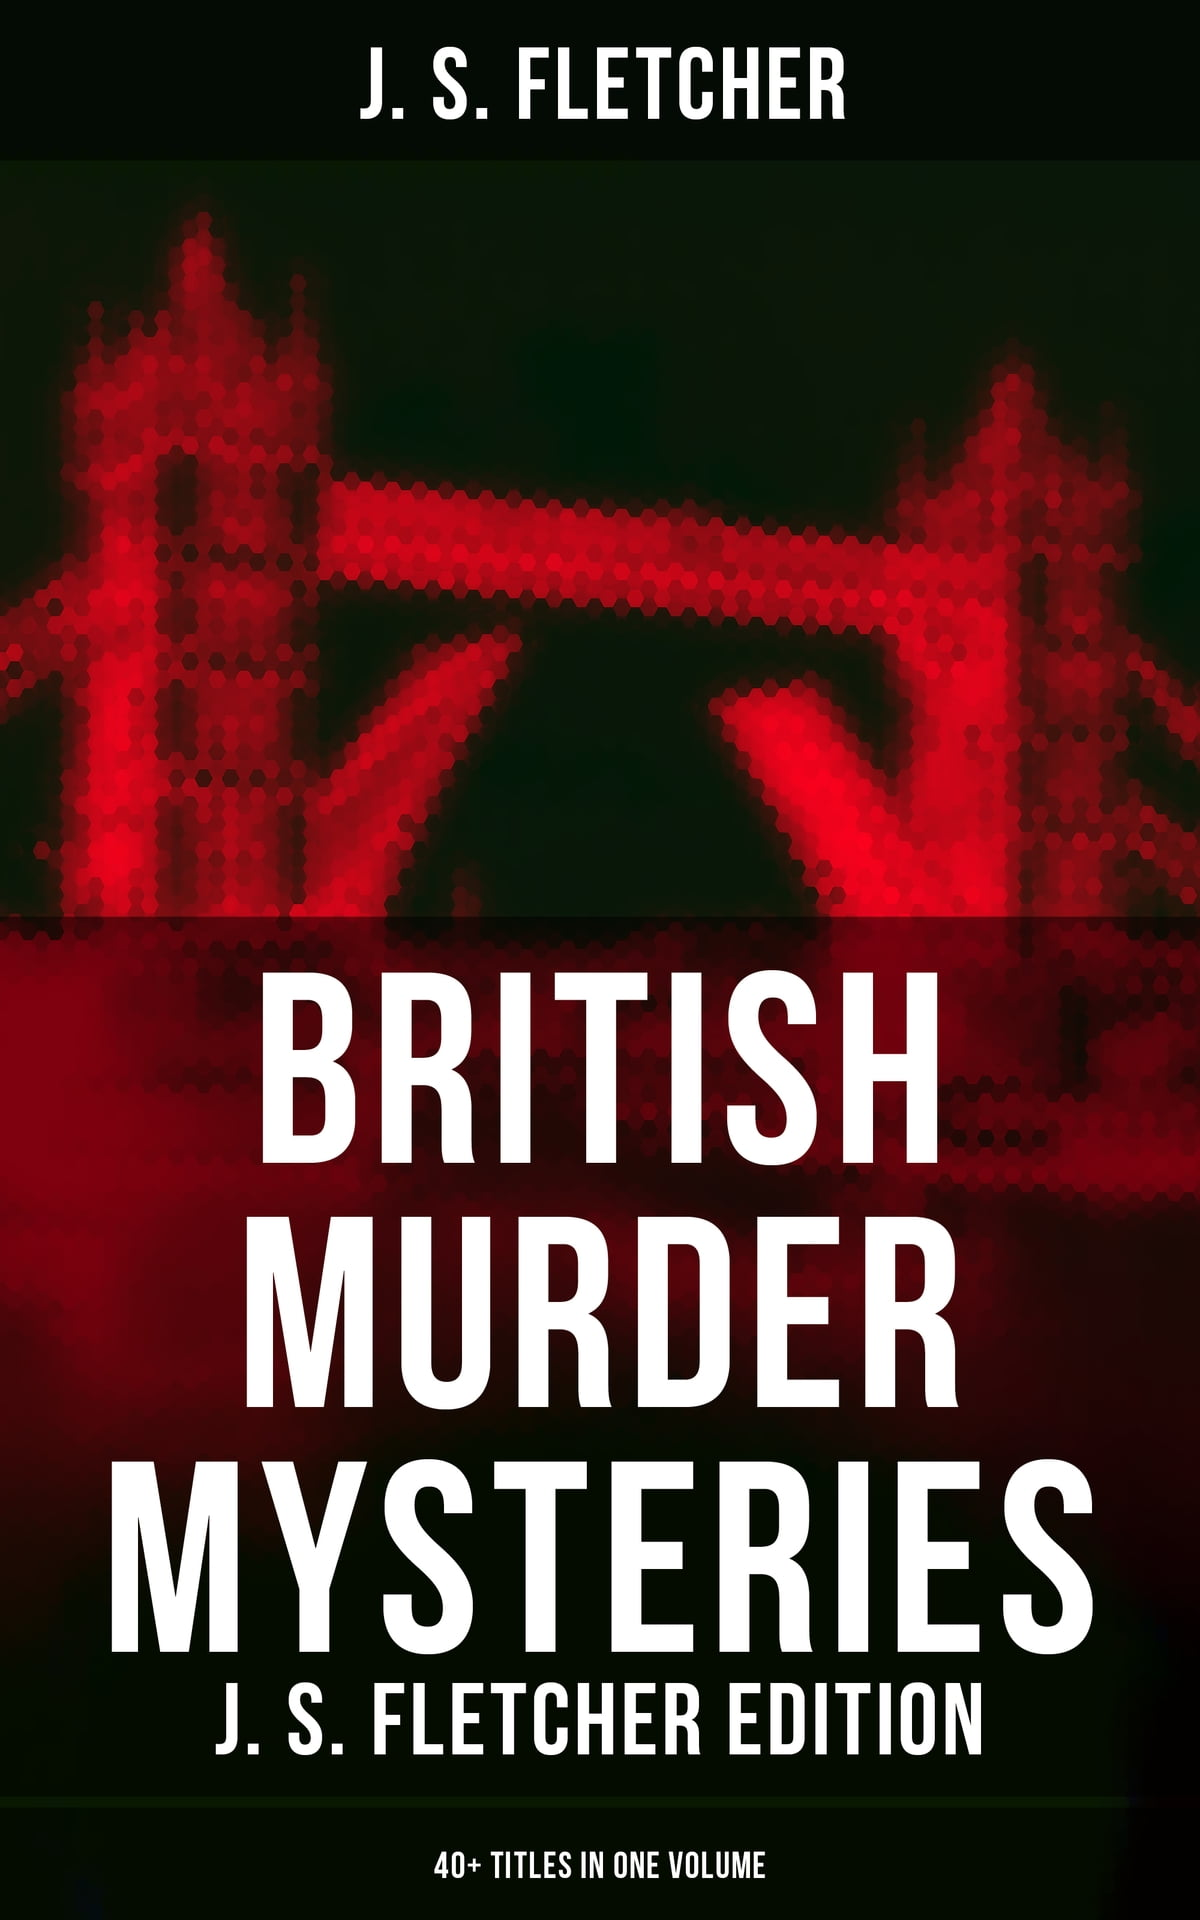 Korting Fletcher British Murder Mysteries J S Fletcher Edition 40 Titles In One Volume Ebook By J S Fletcher Rakuten Kobo